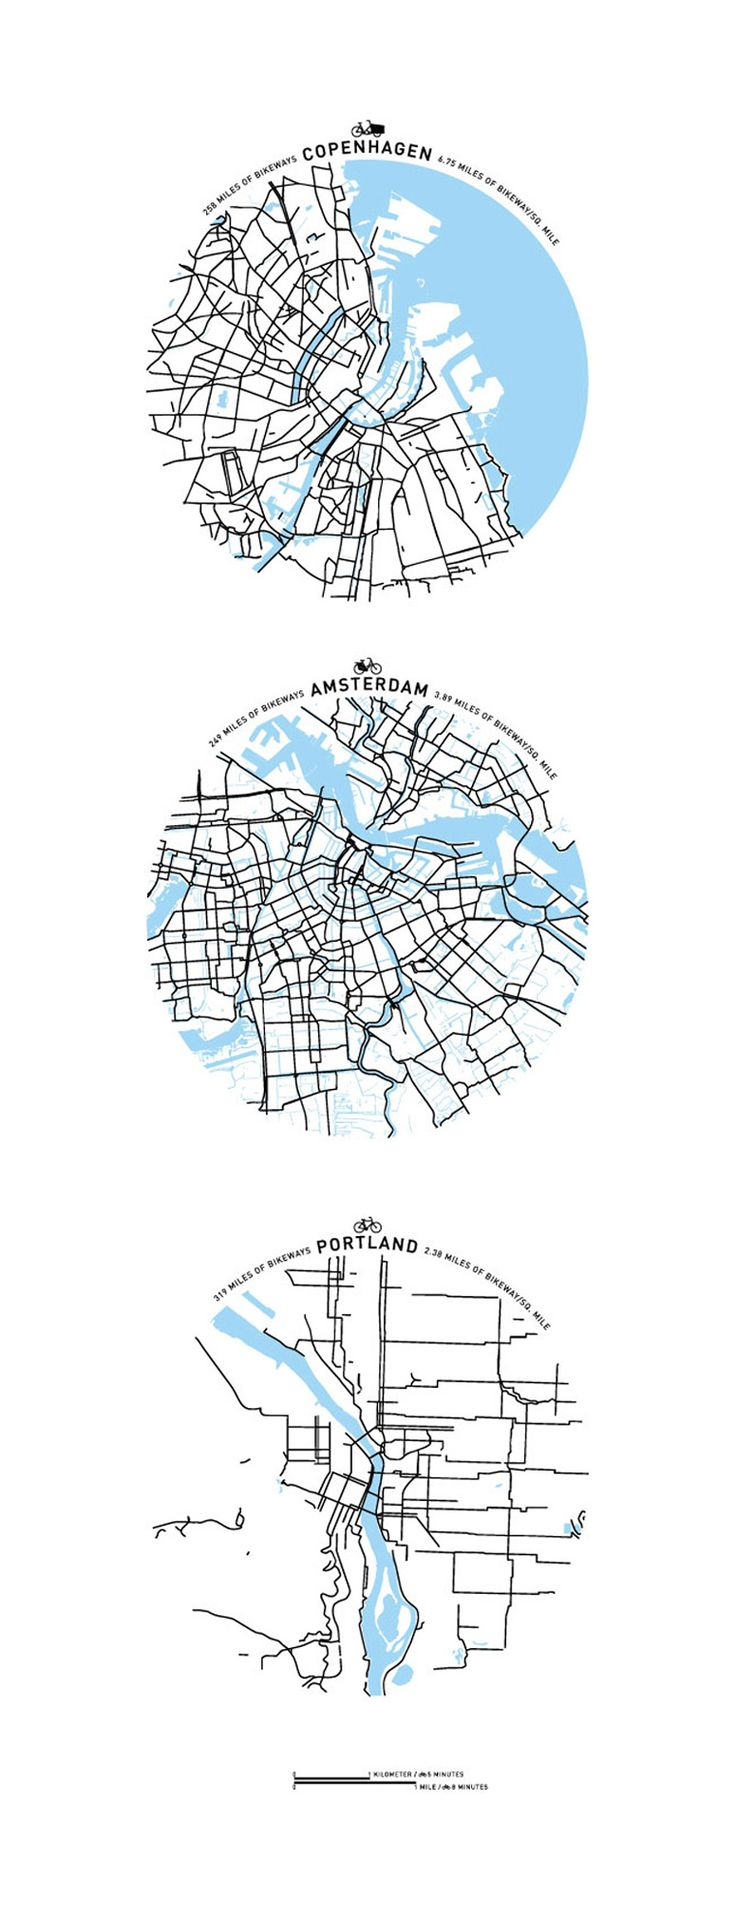 """This letterpressed collection of cycling maps from three of the worlds most cyclist-friendly cities comes in at 10 by 26 inches, but it was printed on a press with a """"maximum"""" print size of only 15 by 21 inches."""